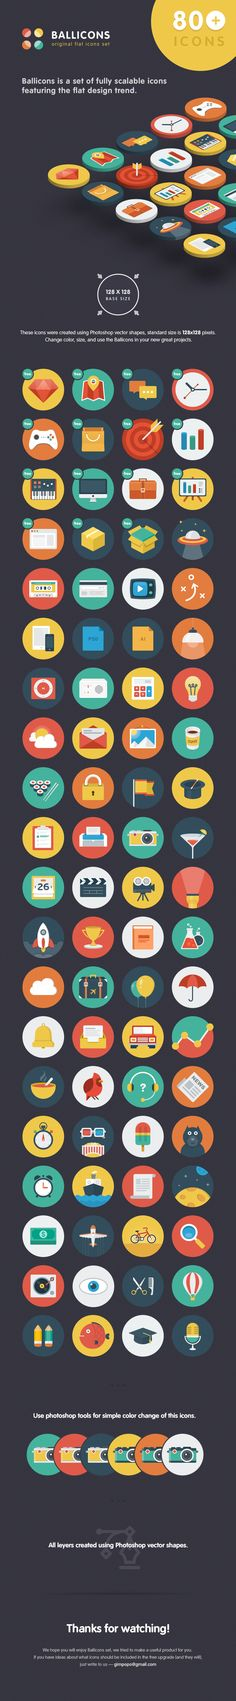 Flat Icon Set by Gimpo Studio (Nick & Oksana) - http://ballicons.net/